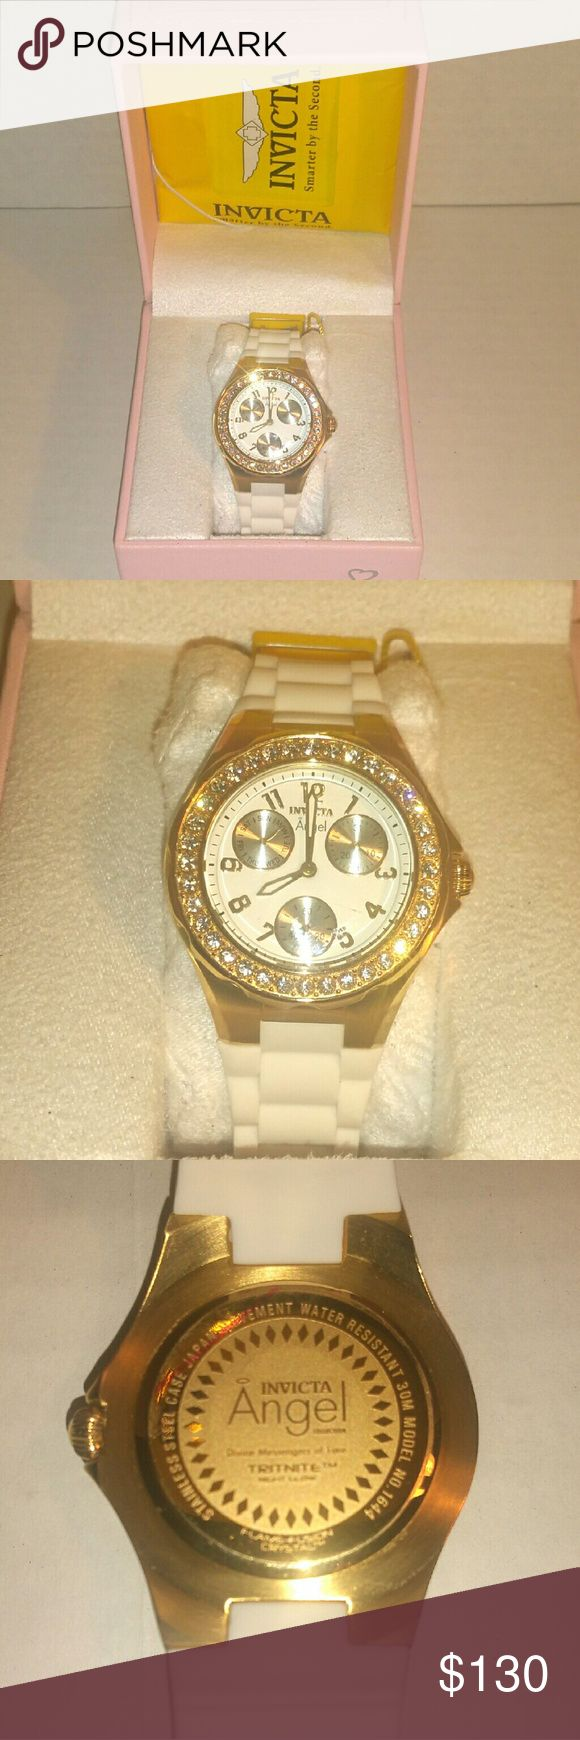 Women's Invicta Watch Women's Invicta watch White and gold with 36 crystals. White silicone watch band. Day, date, and second dials. Worn once. Absolutely no scratches or flaws. Excellent condition. Pet and smoke free environment. Invicta Accessories Watches